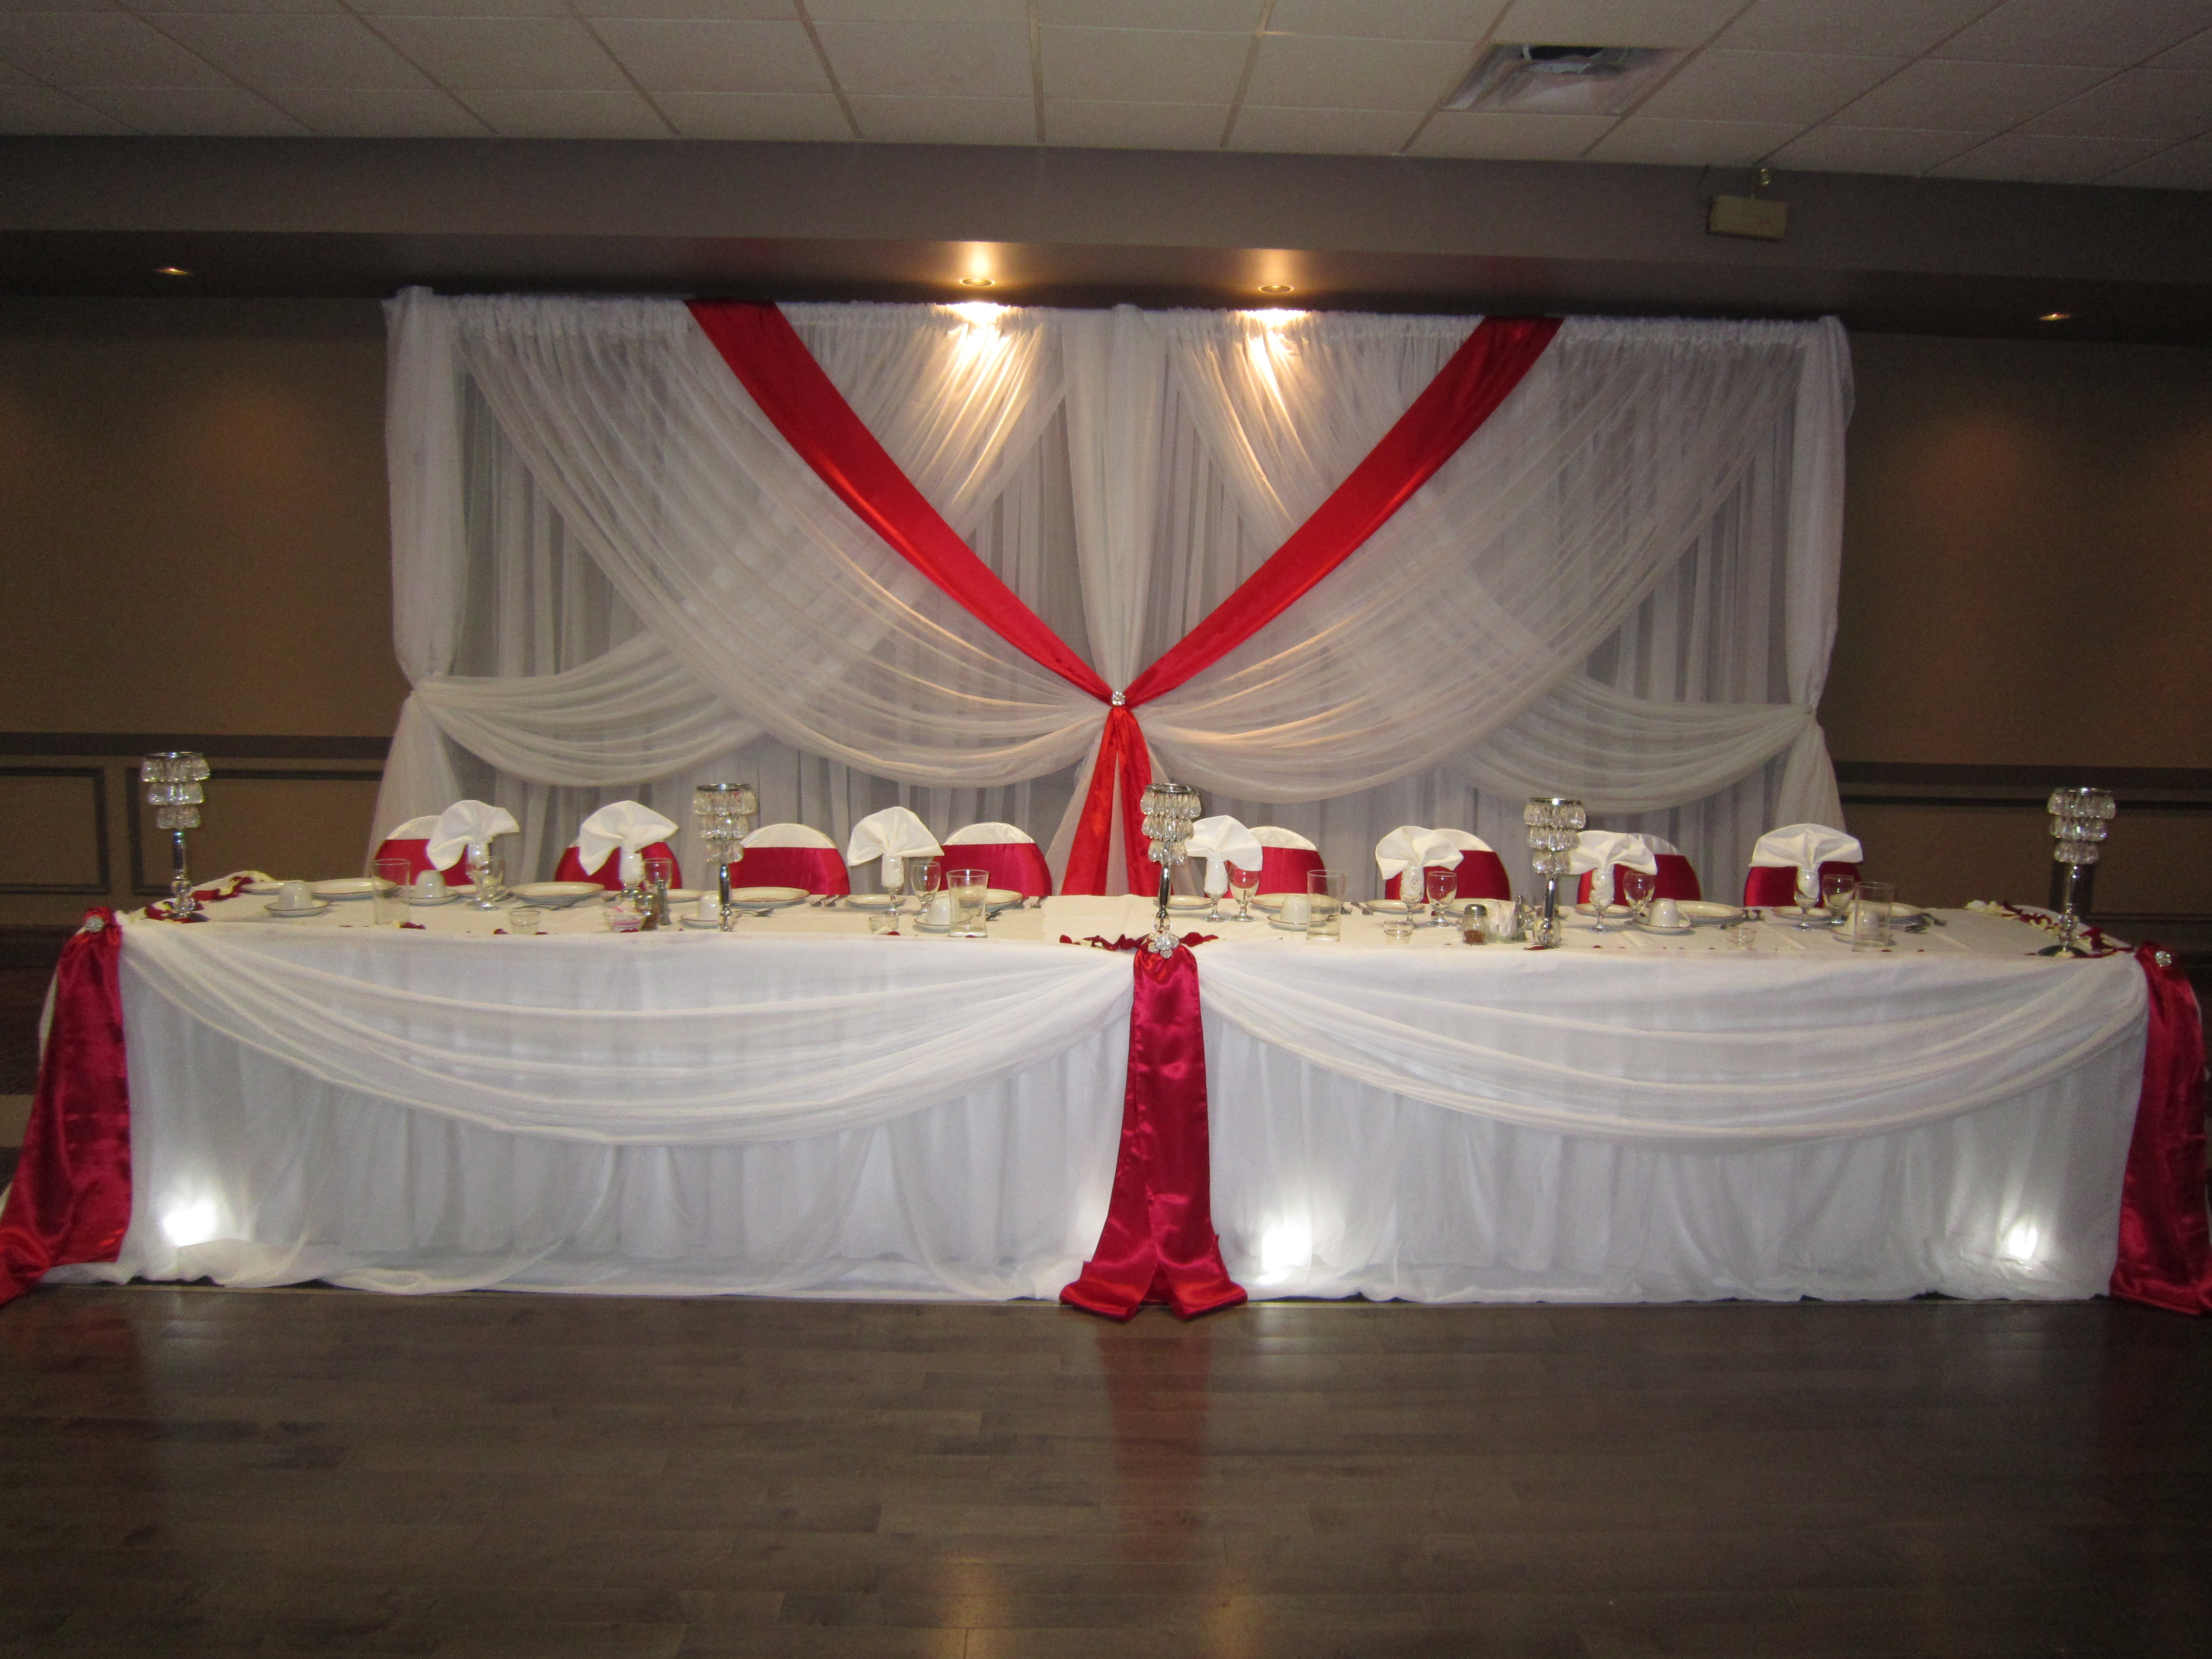 Red roses set the mood decor - Red and white decorations ...